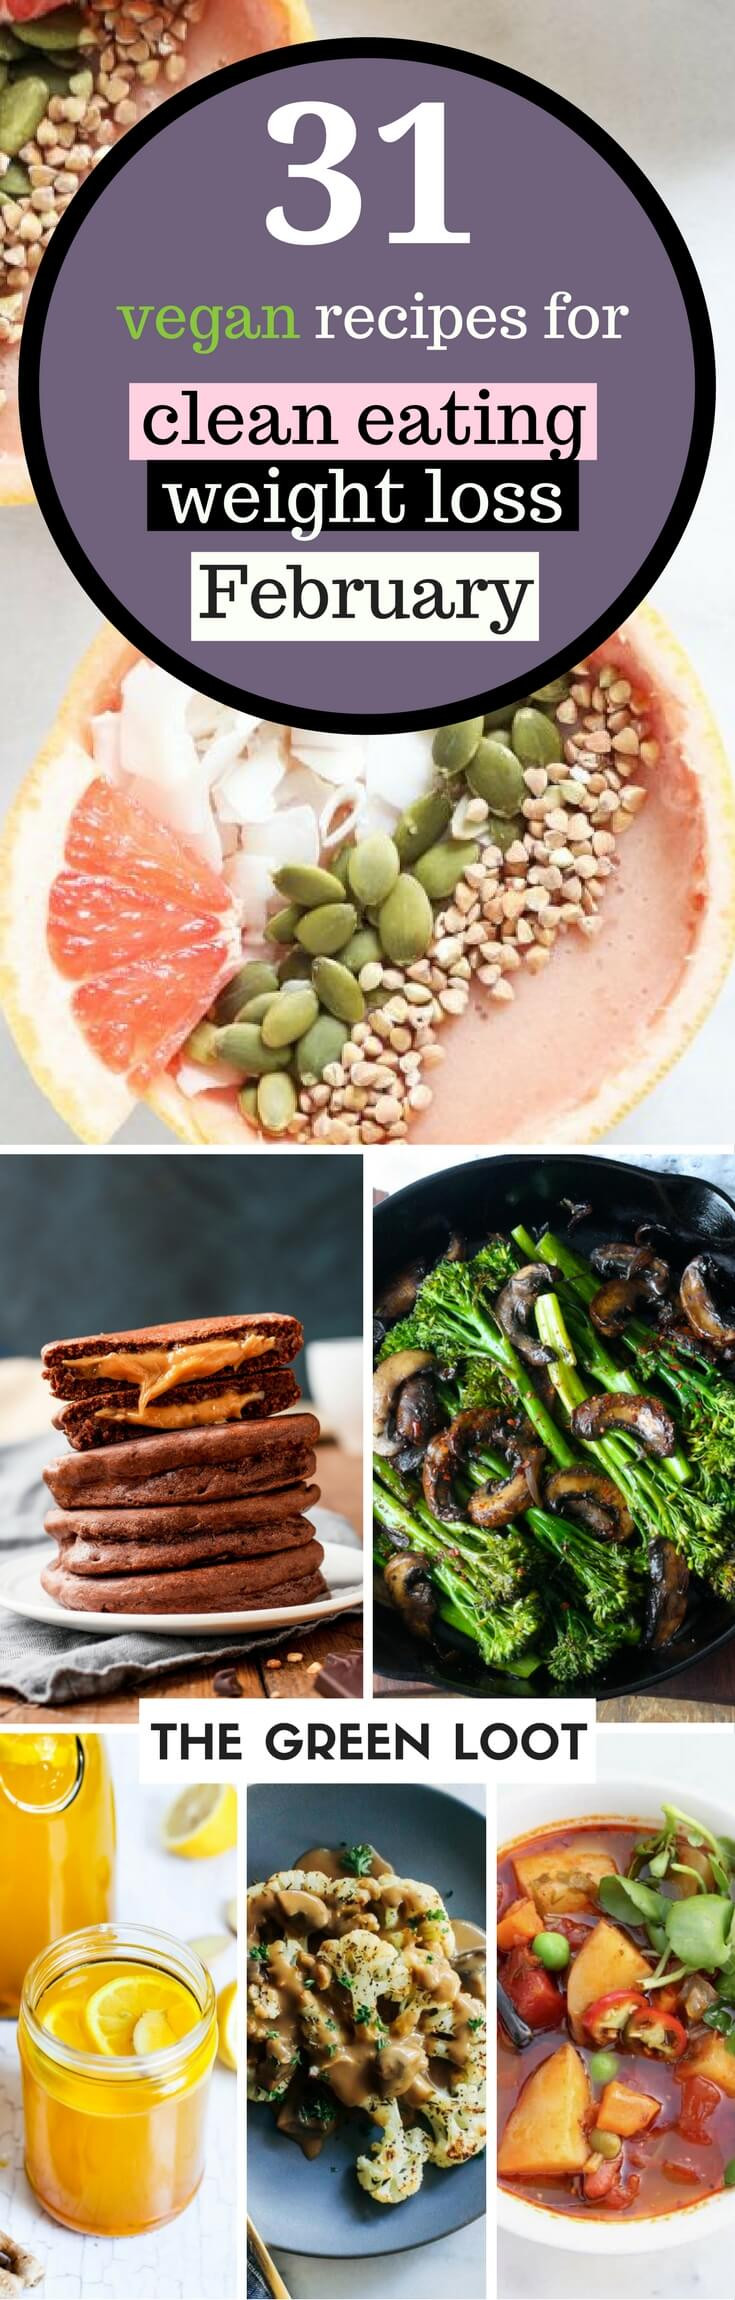 Healthy Vegetarian Breakfast For Weight Loss  31 Vegan Clean Eating Weight Loss Recipes for February